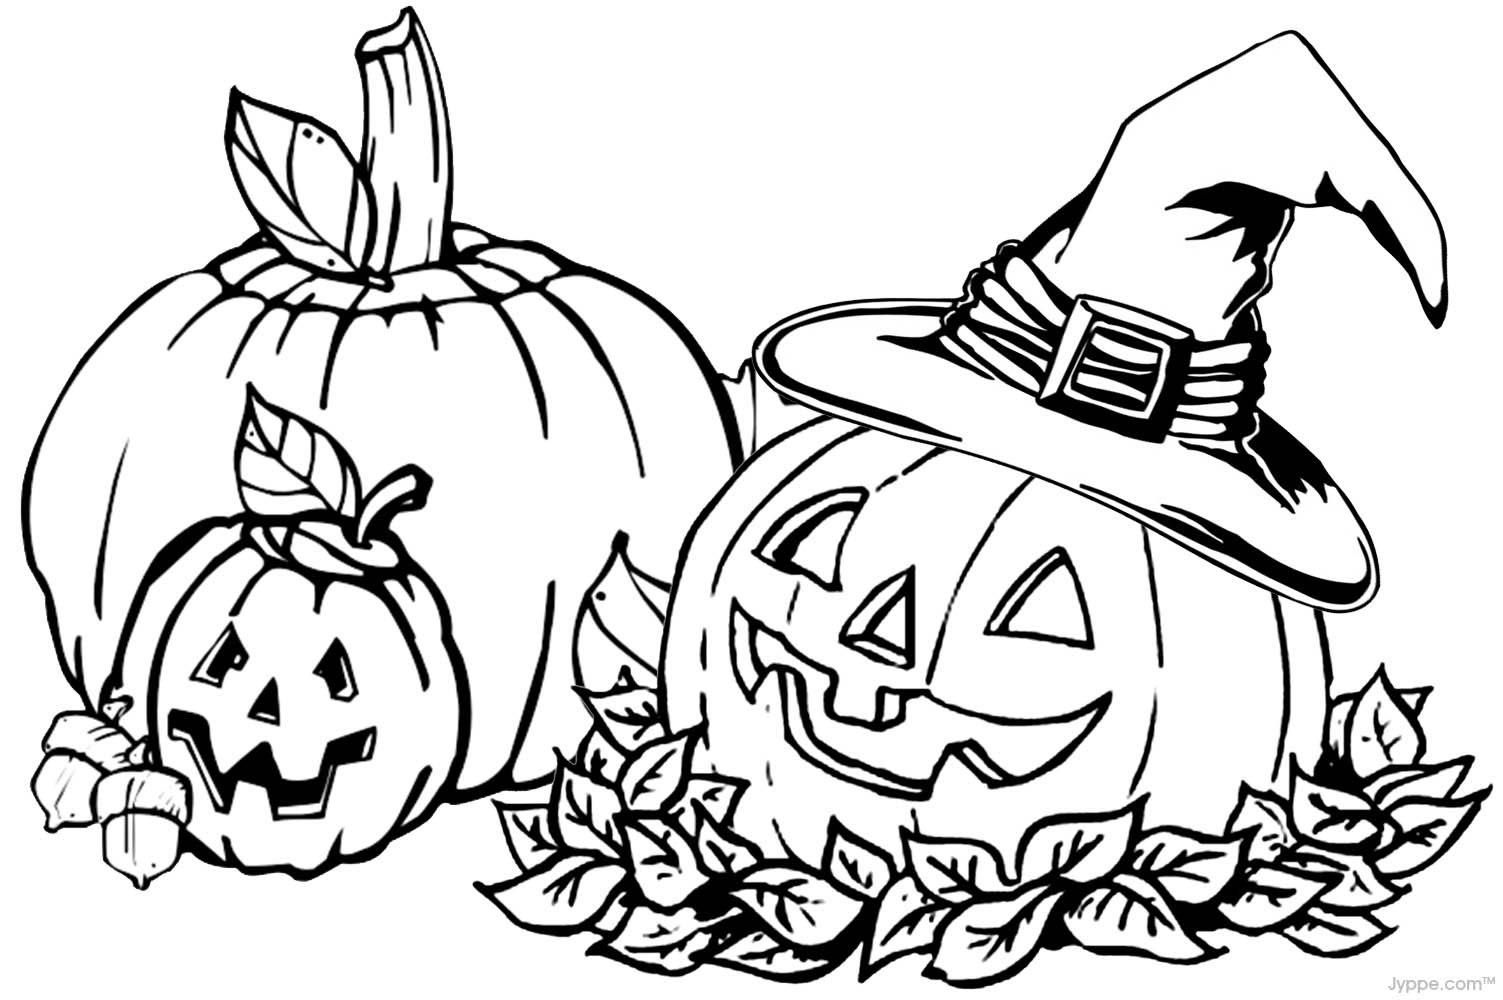 Coloring pages for halloween pumpkins - Fall Pumpkin Coloring Pages